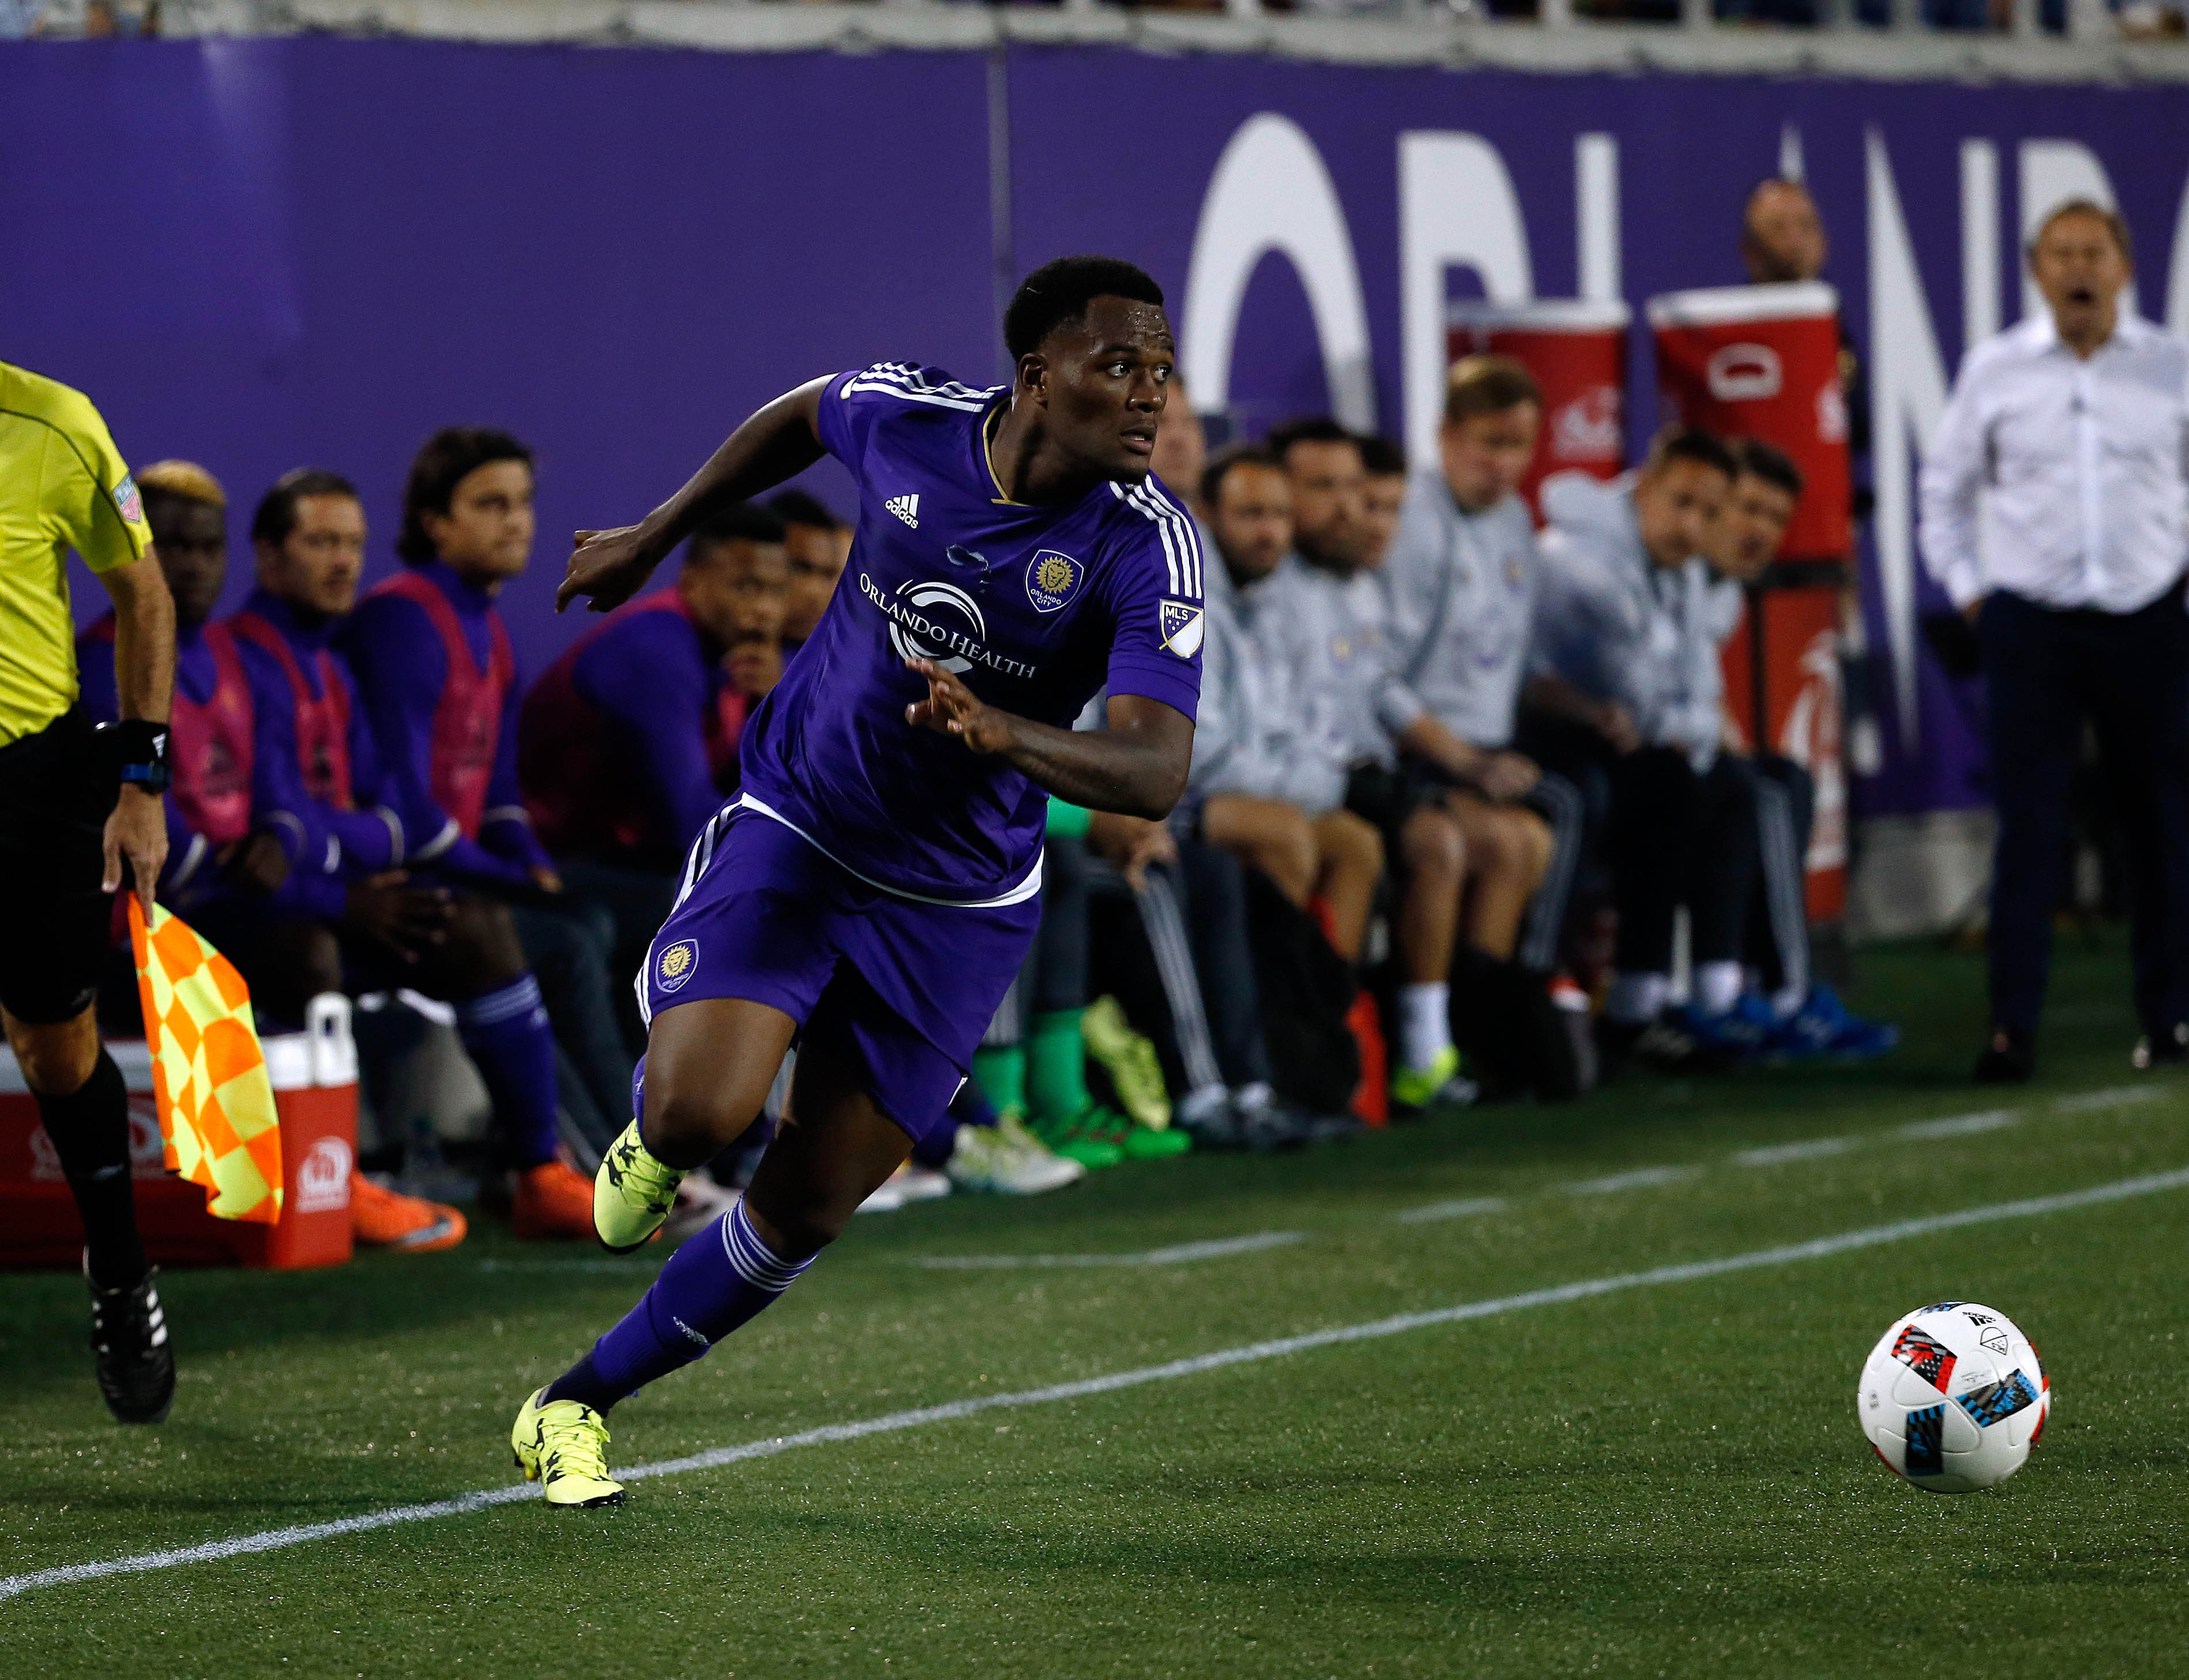 Larin dribbles along the sideline in Orlando's draw against the New York Red Bulls.